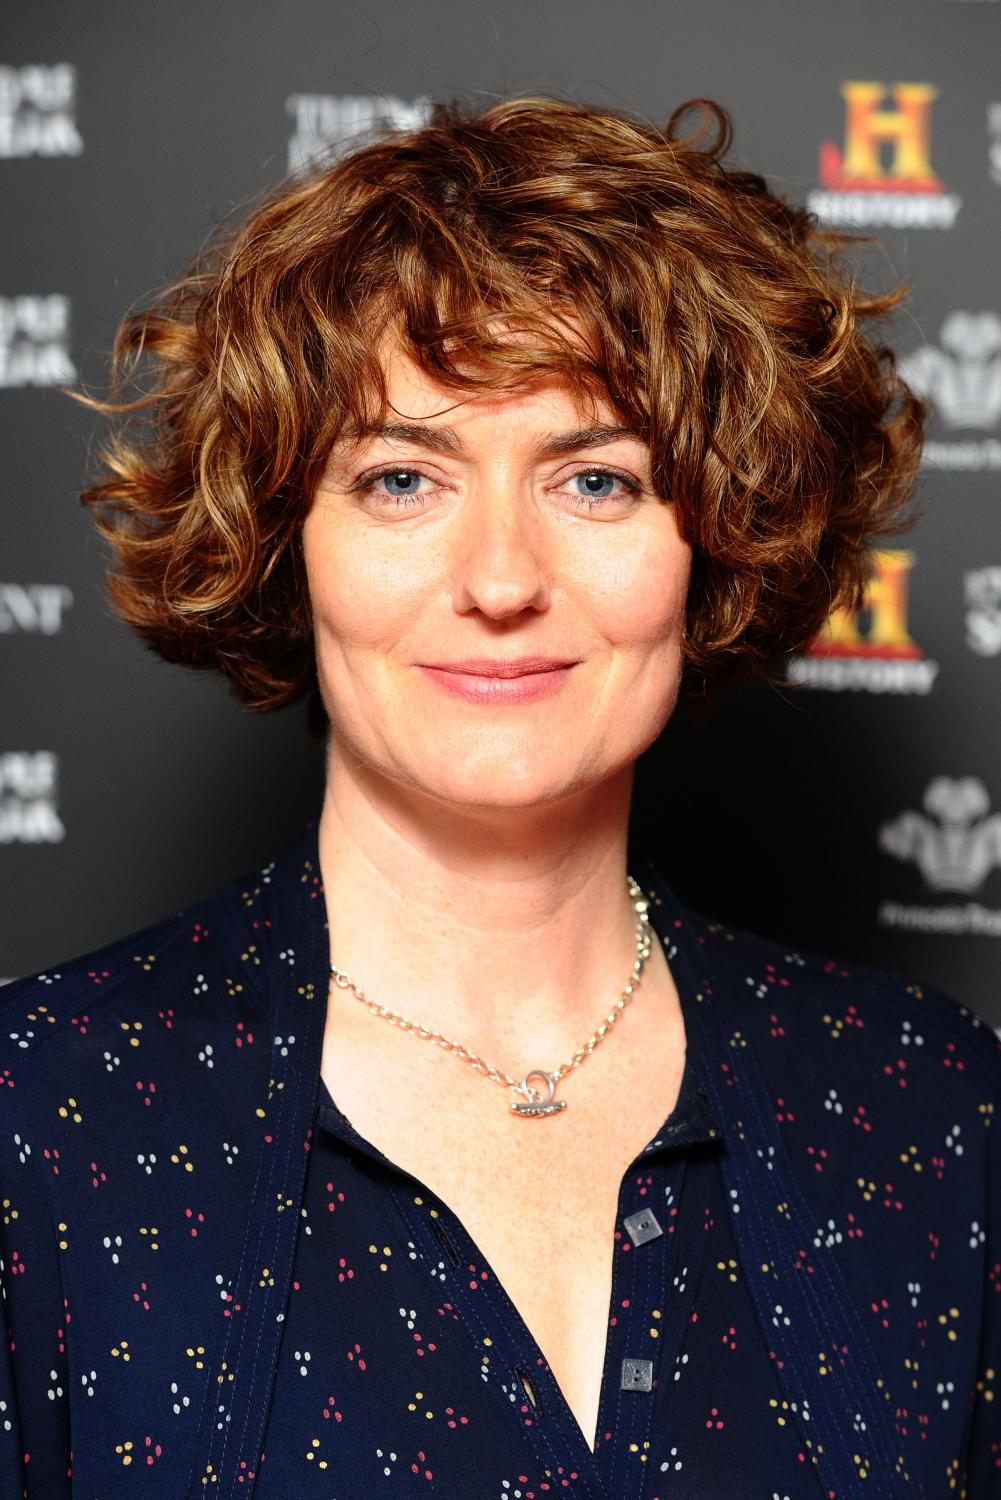 Anna Chancellor Girls are so glamorous but cant get